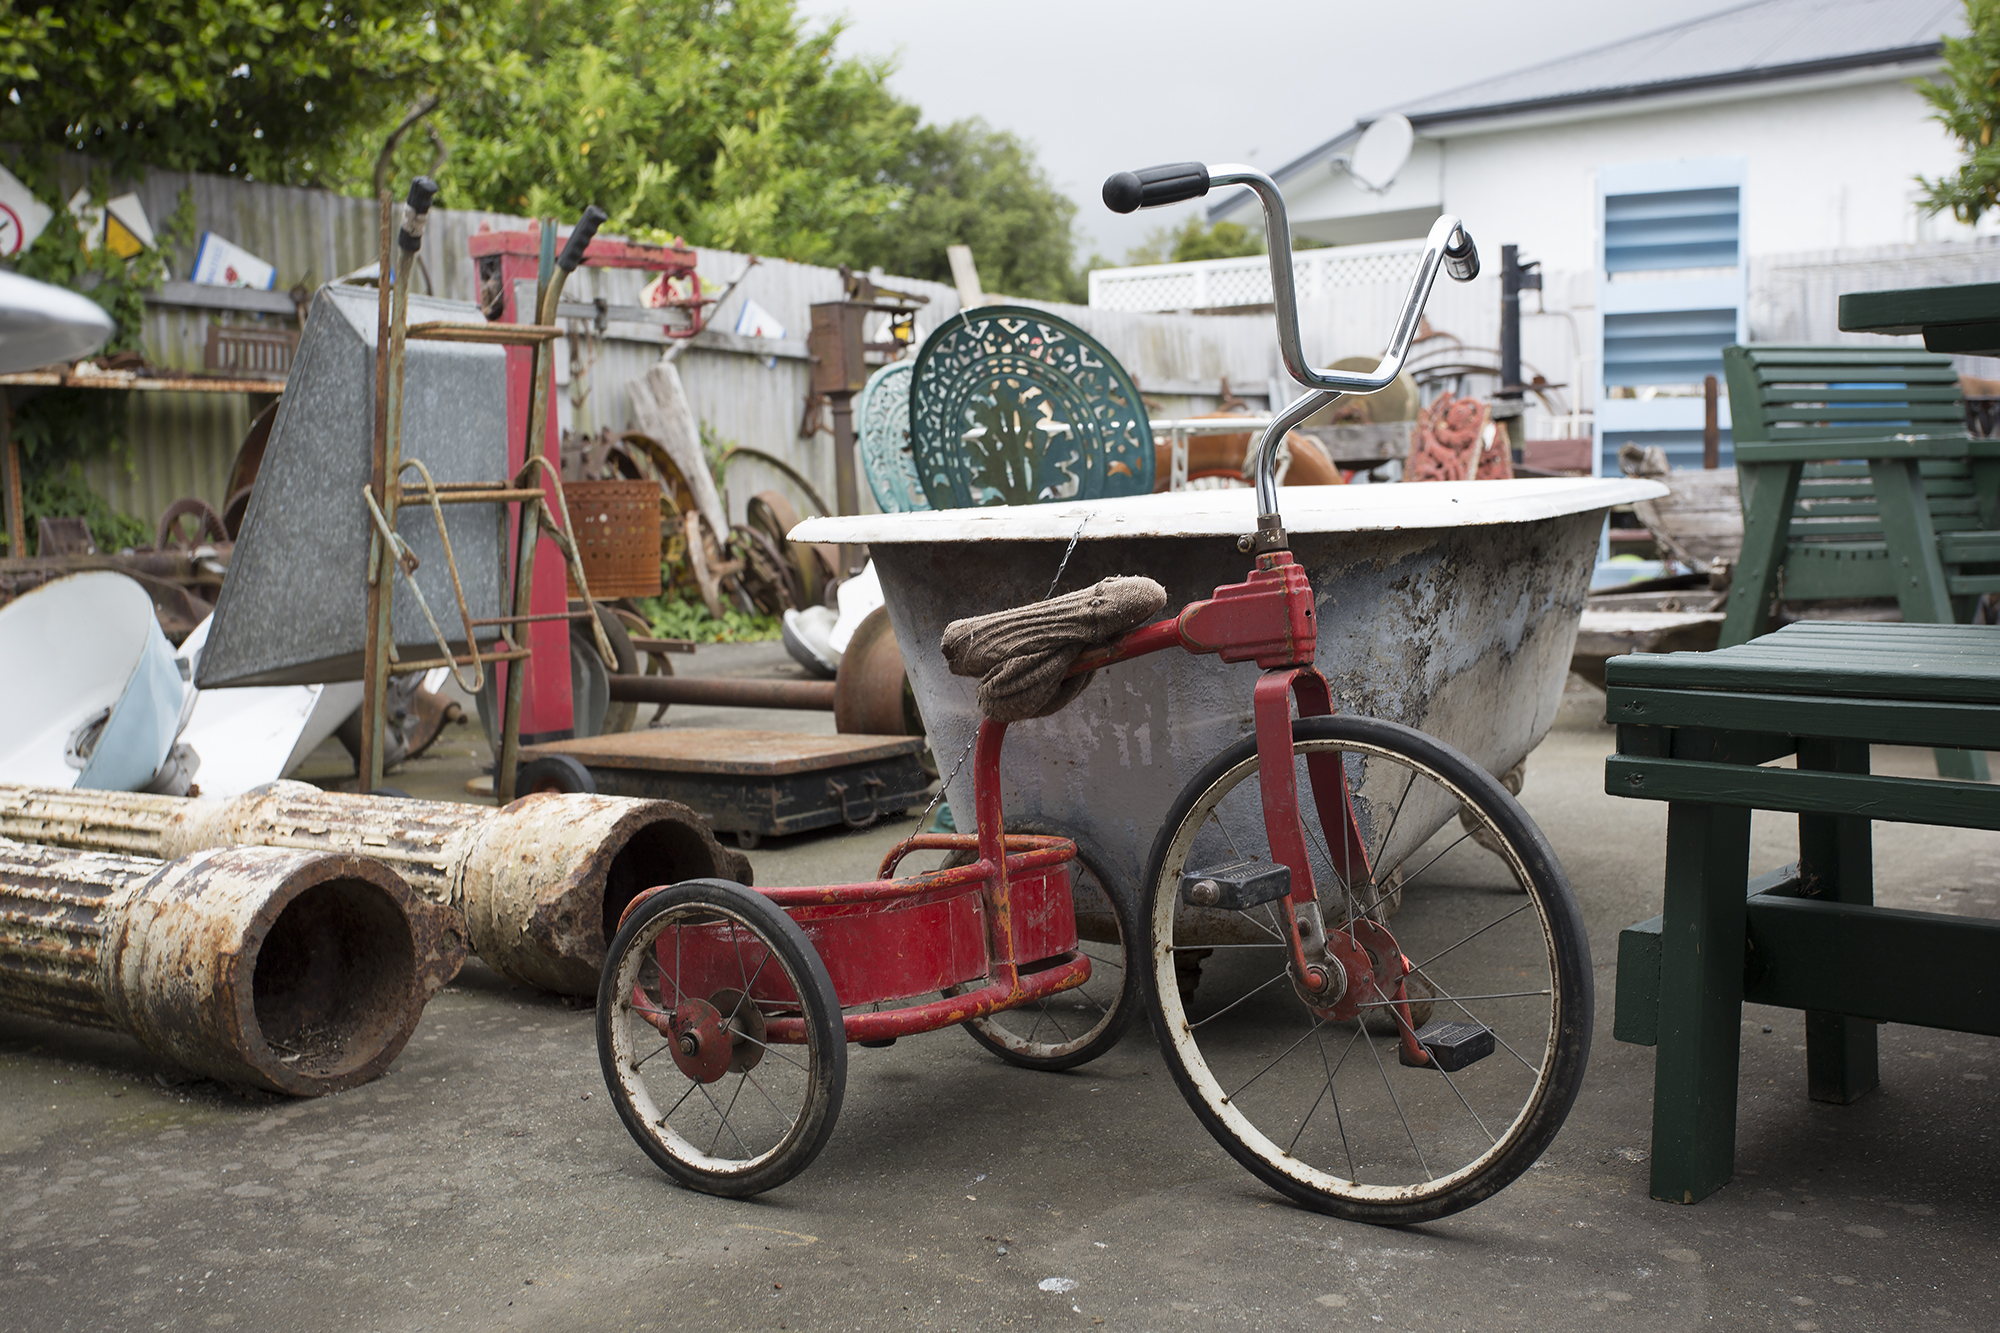 I remember riding a tricycle like this as a little girl at my grandparents orchard, they just don't make things as rough and tough as they used to. This little bike would be well over 30yrs old.